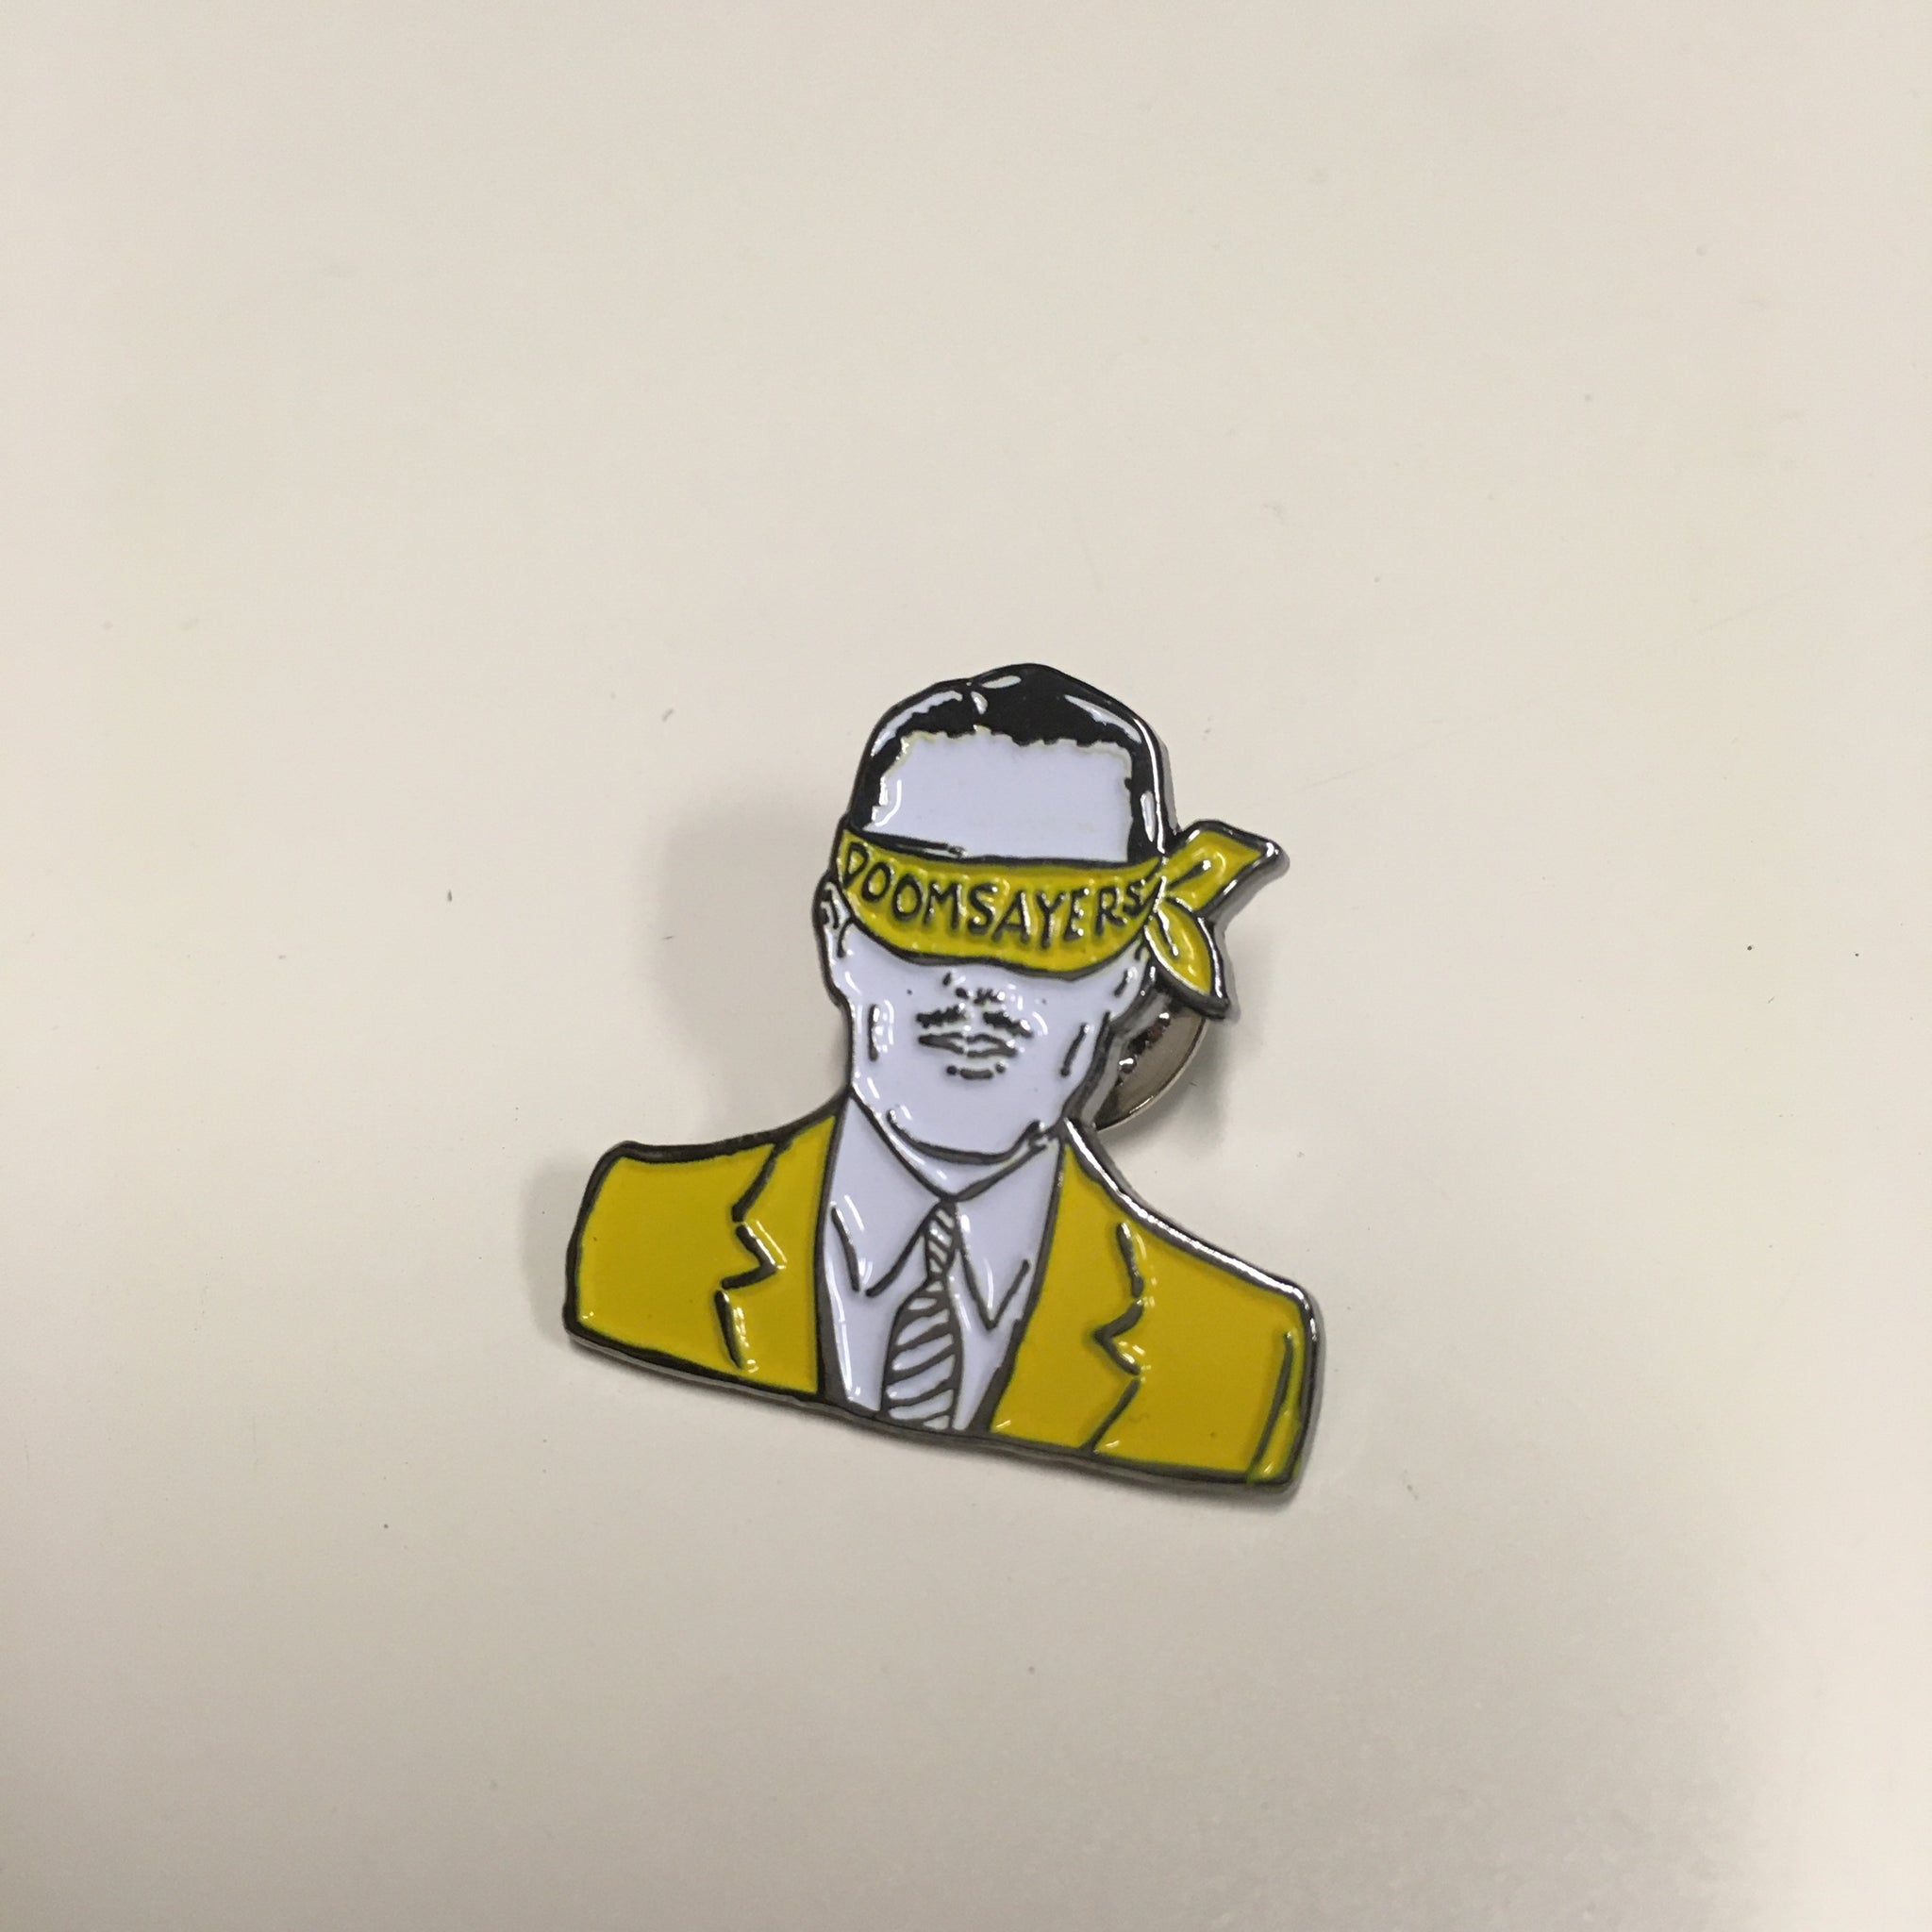 DOOM SAYERS CLUB | Corp. Guy Pin